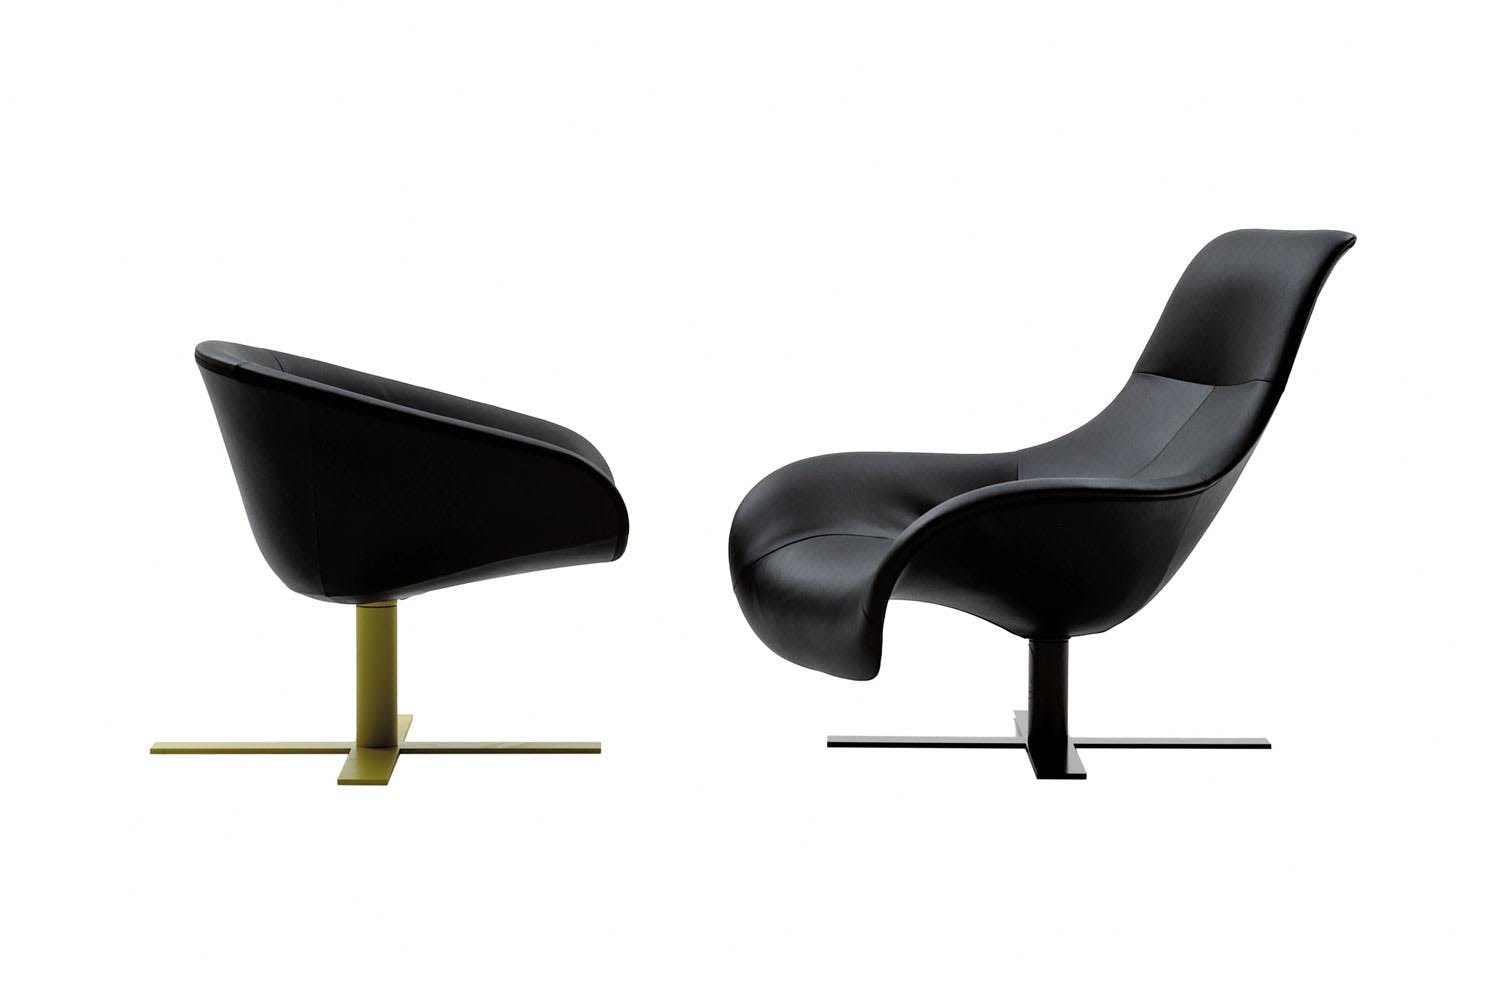 mart armchair by antonio citterio for b b italia space. Black Bedroom Furniture Sets. Home Design Ideas